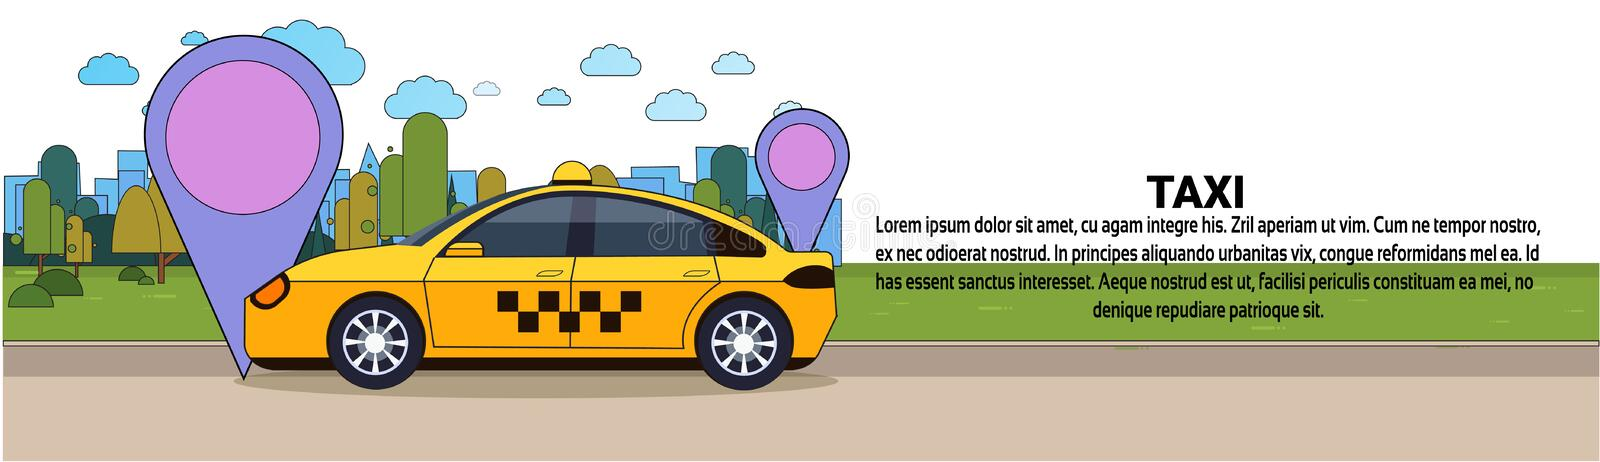 Taxi Car With Gps Location Sign Online Cab Service Concept Horizontal Banner. Flat Vector Illustration royalty free illustration